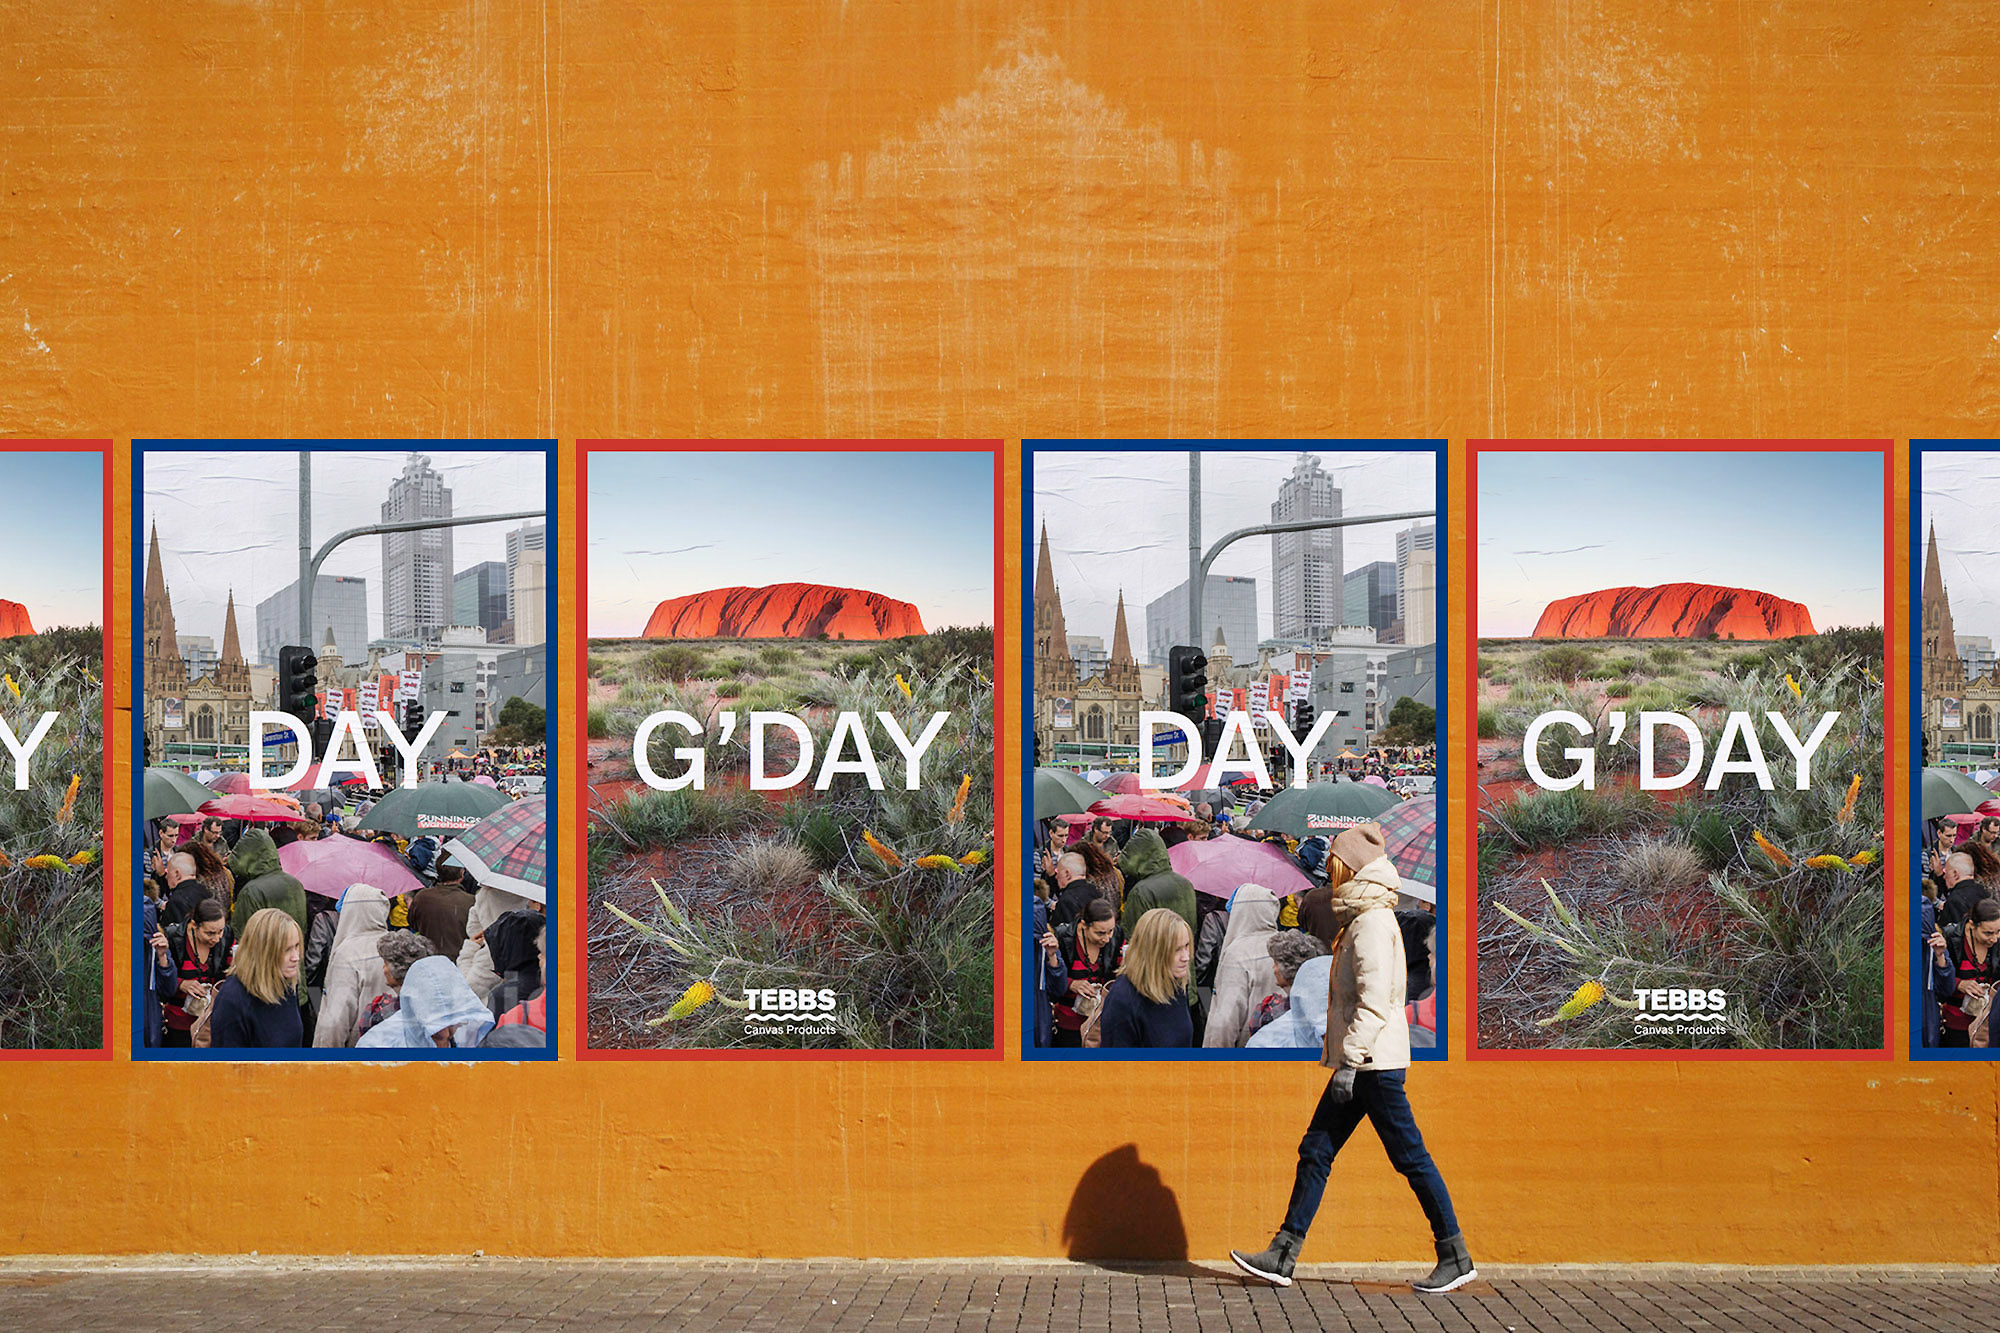 Outdoor ad campaign